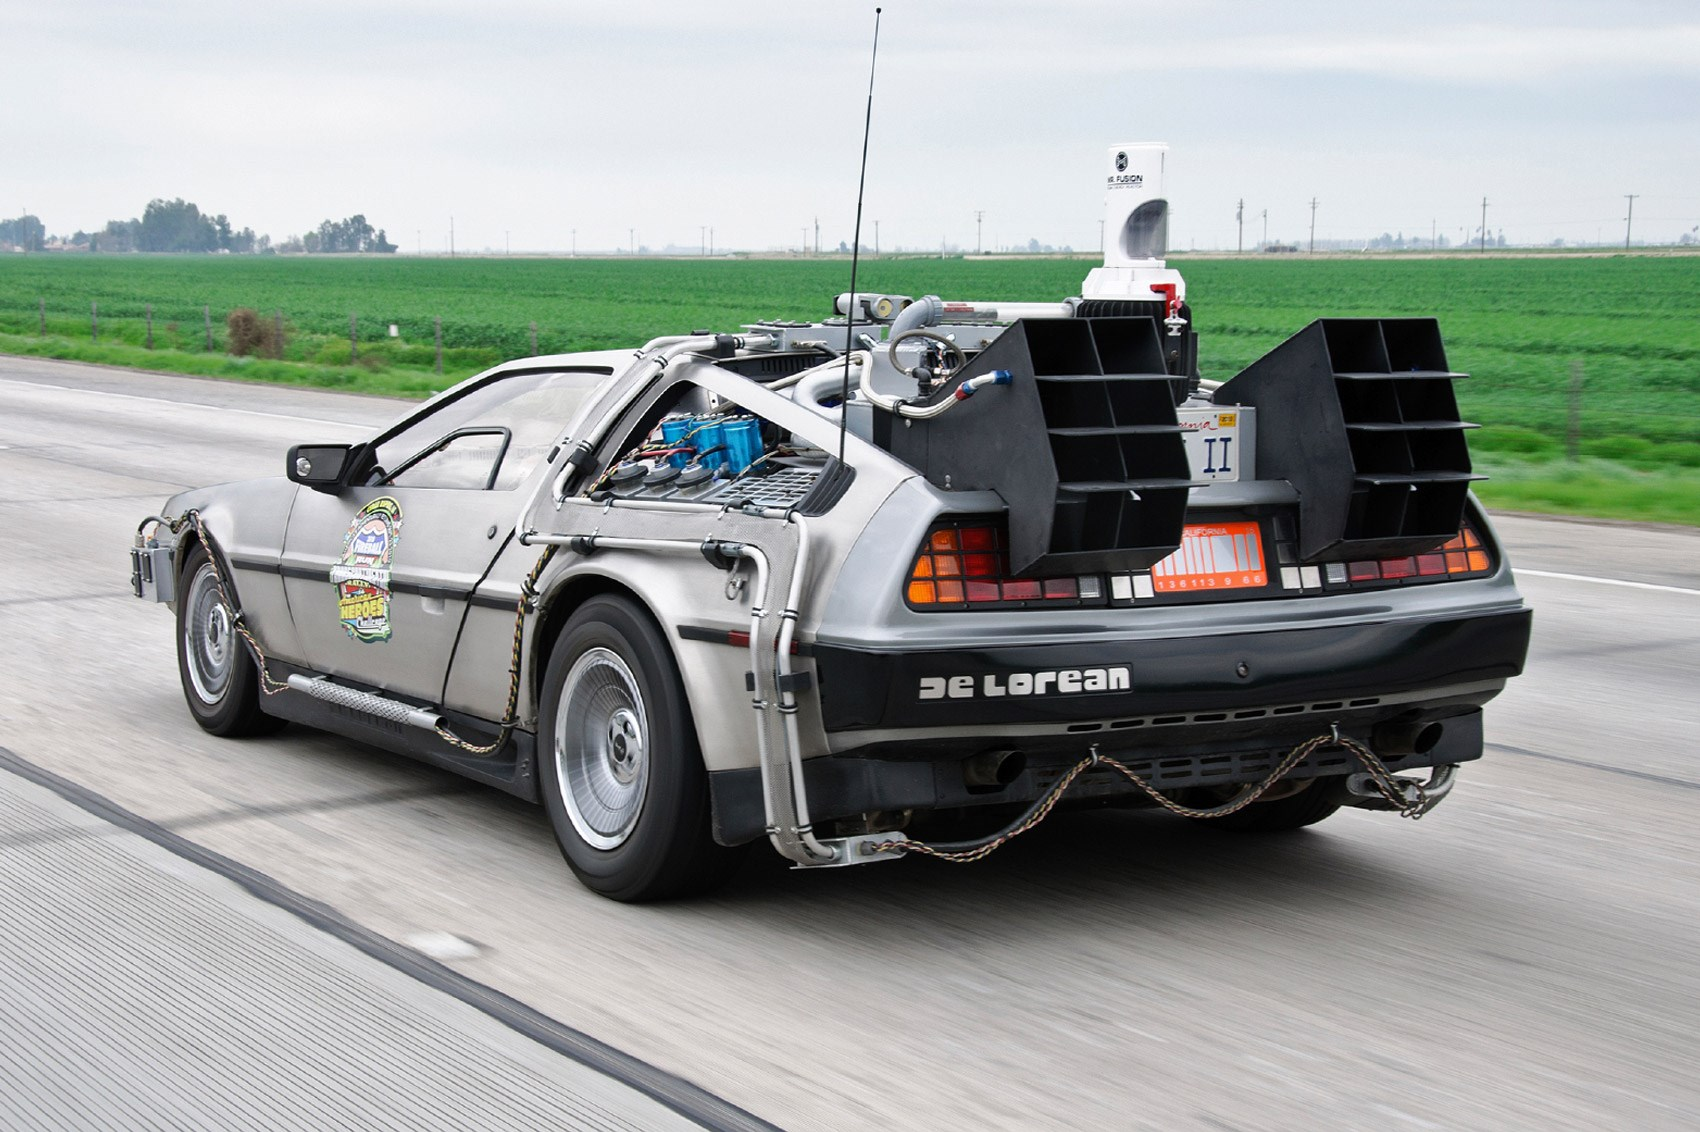 This is heavy a new DeLorean DMC 12 could go on sale in 2017 by CAR